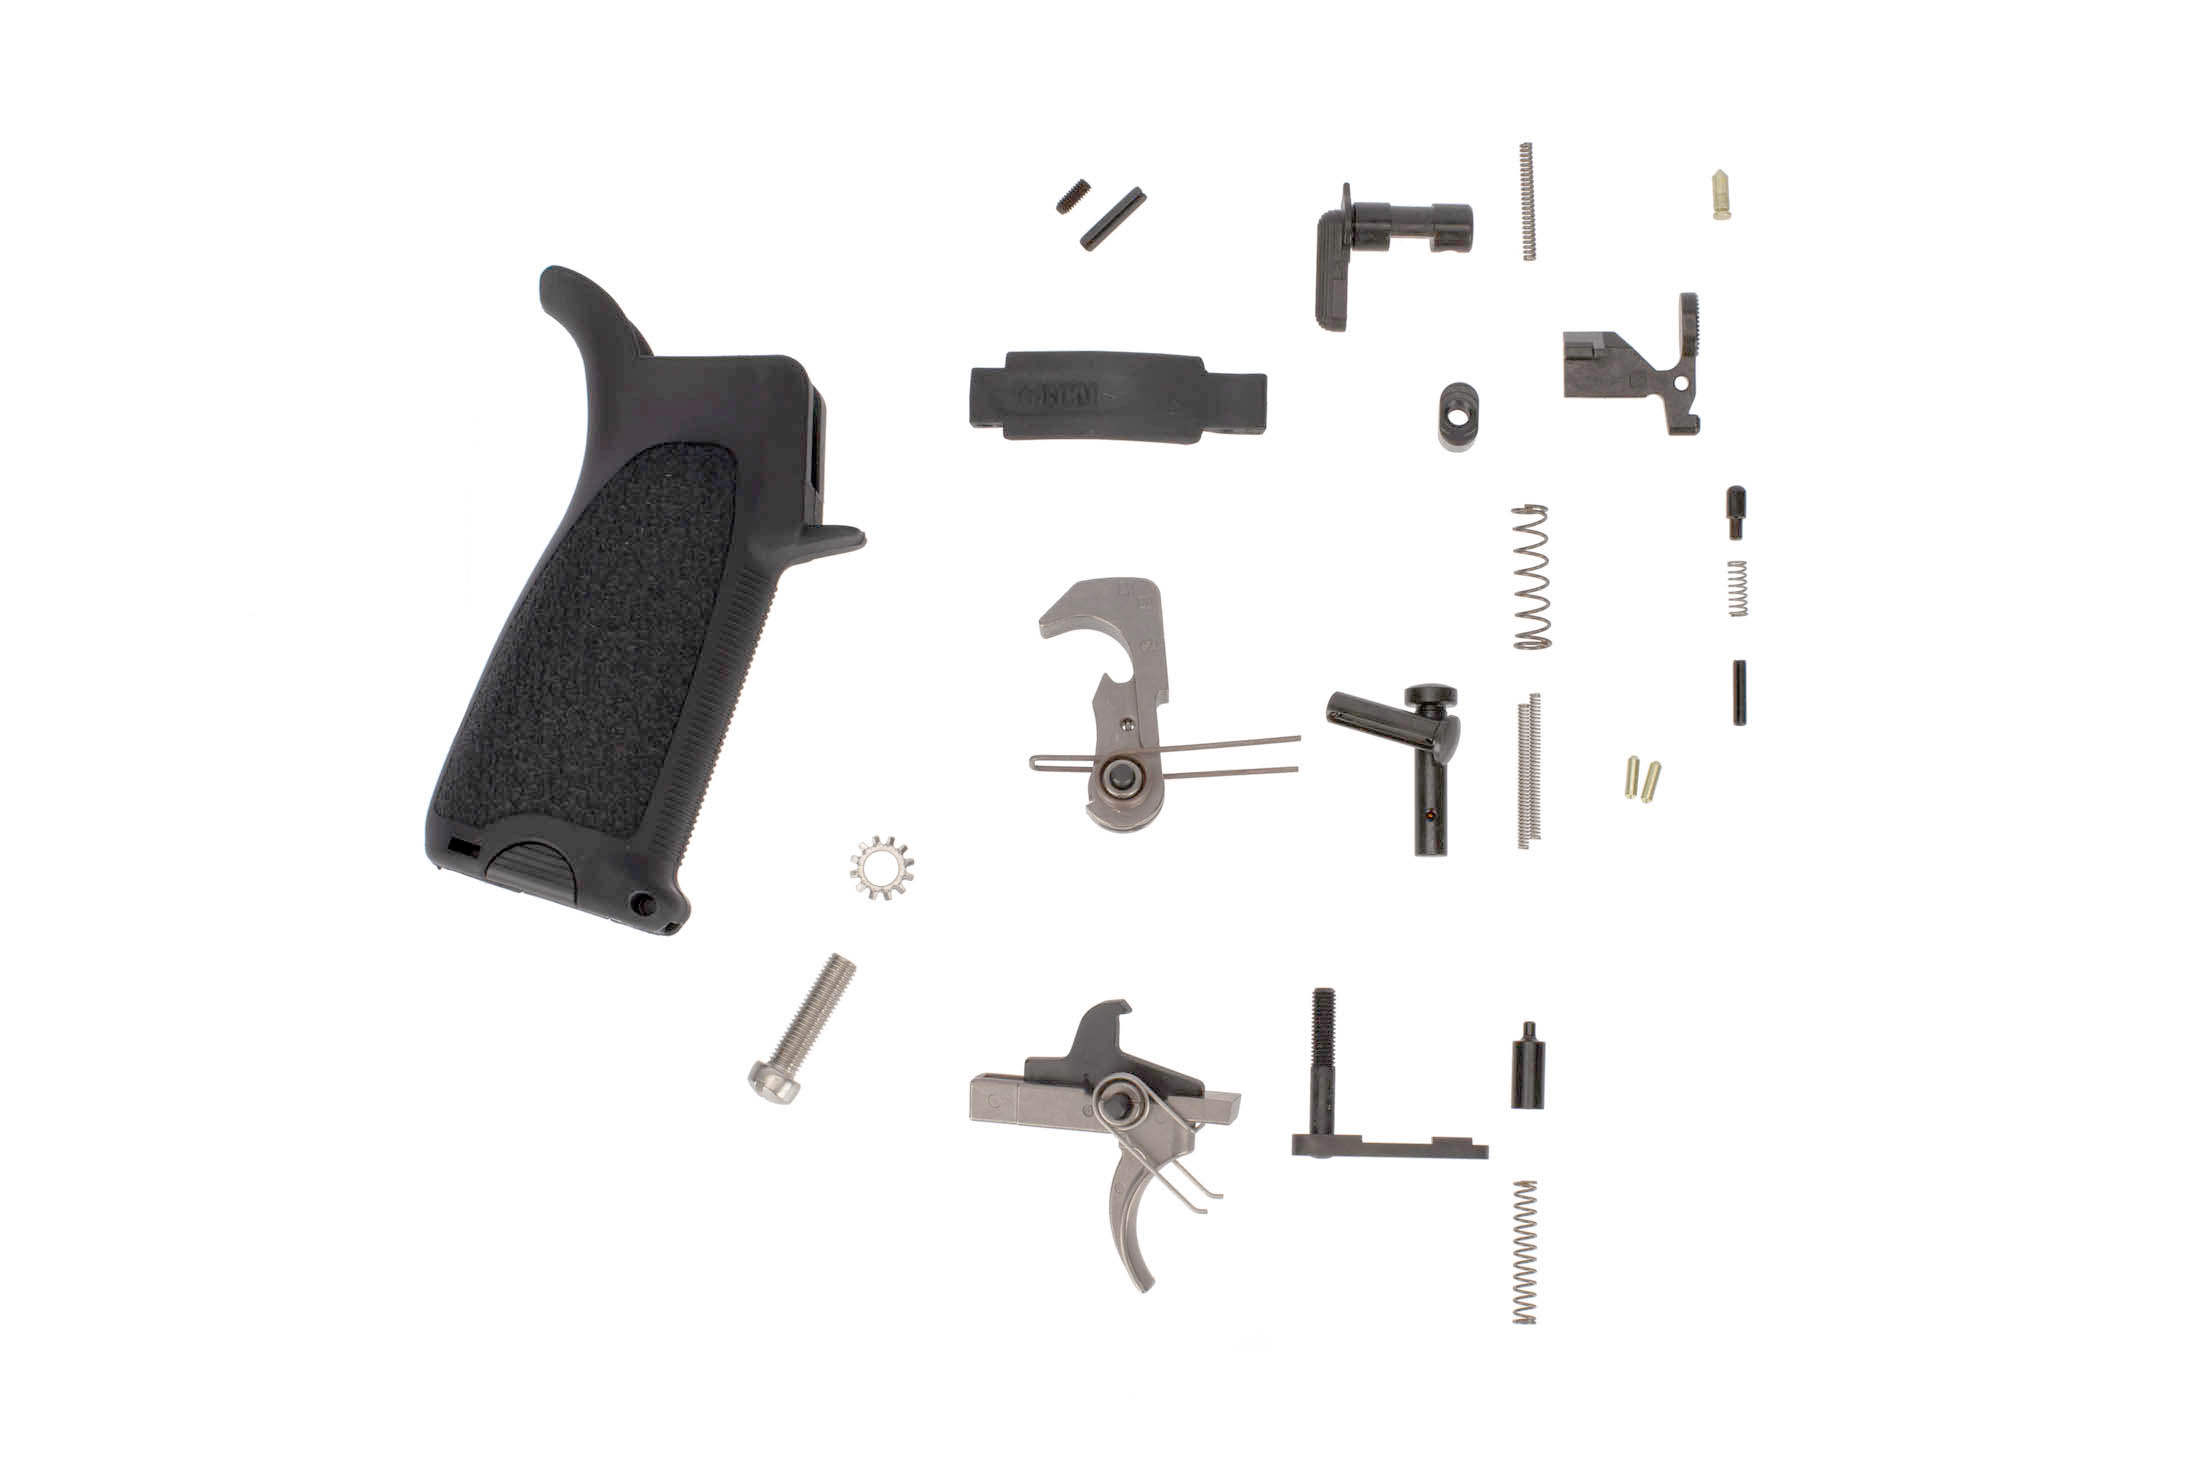 Bravo Company GUNFIGHTER Enhanced AR-15 lower parts kit with black BCM grip and trigger guard